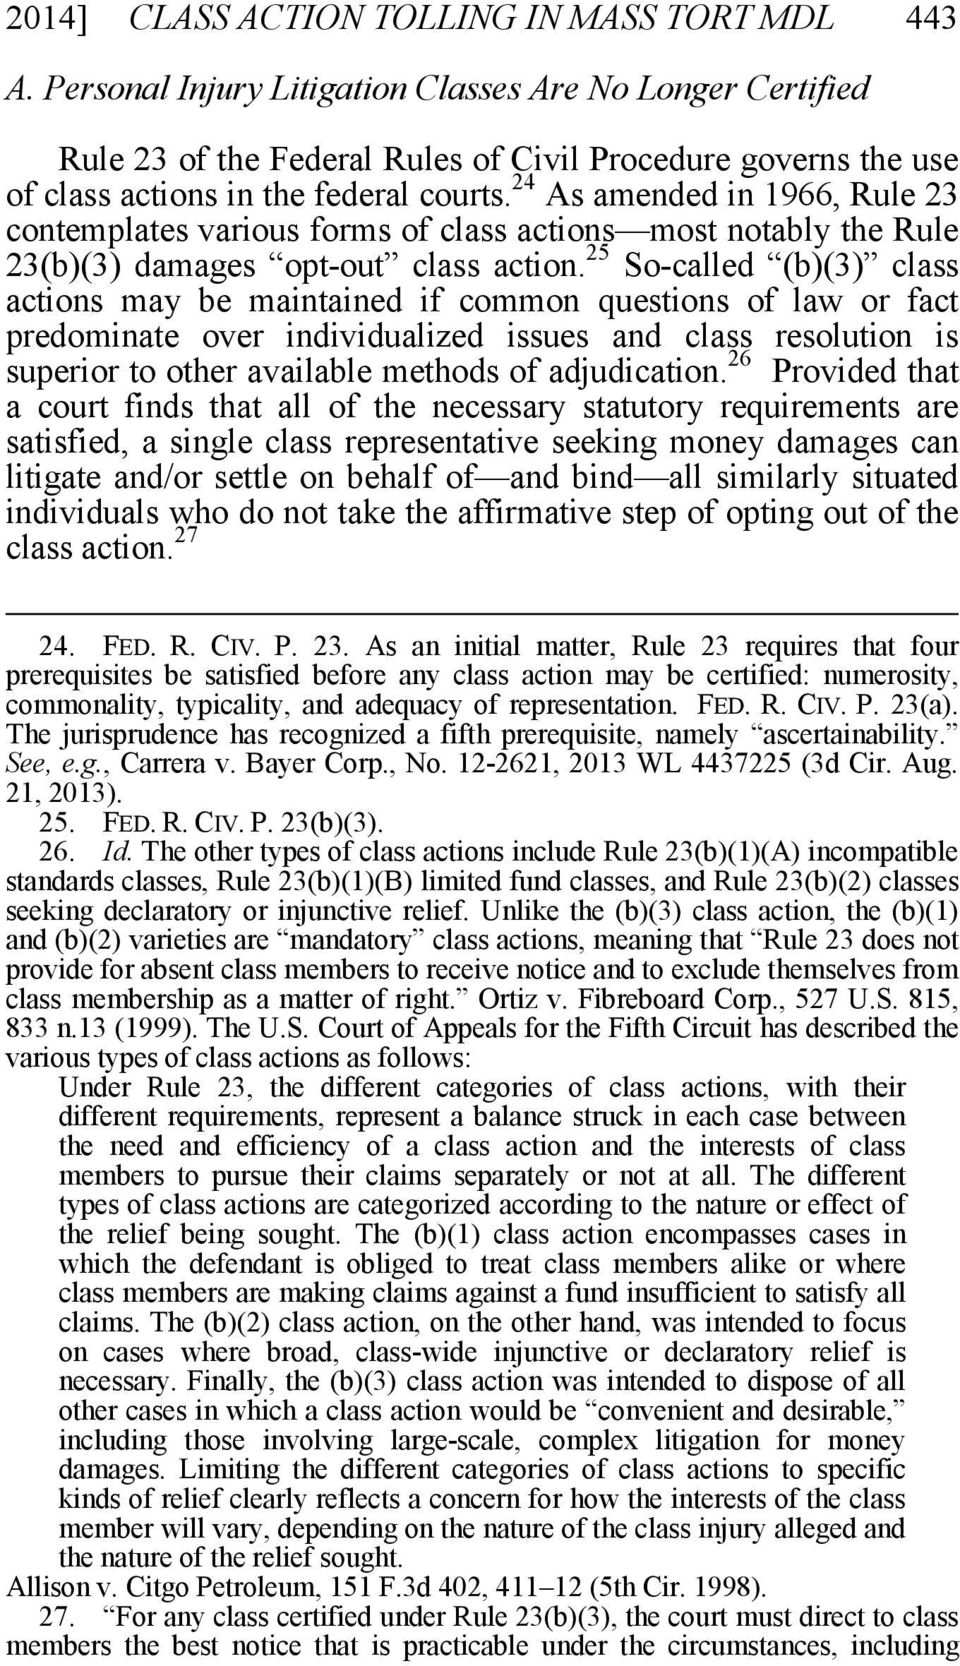 24 As amended in 1966, Rule 23 contemplates various forms of class actions most notably the Rule 23(b)(3) damages opt-out class action.